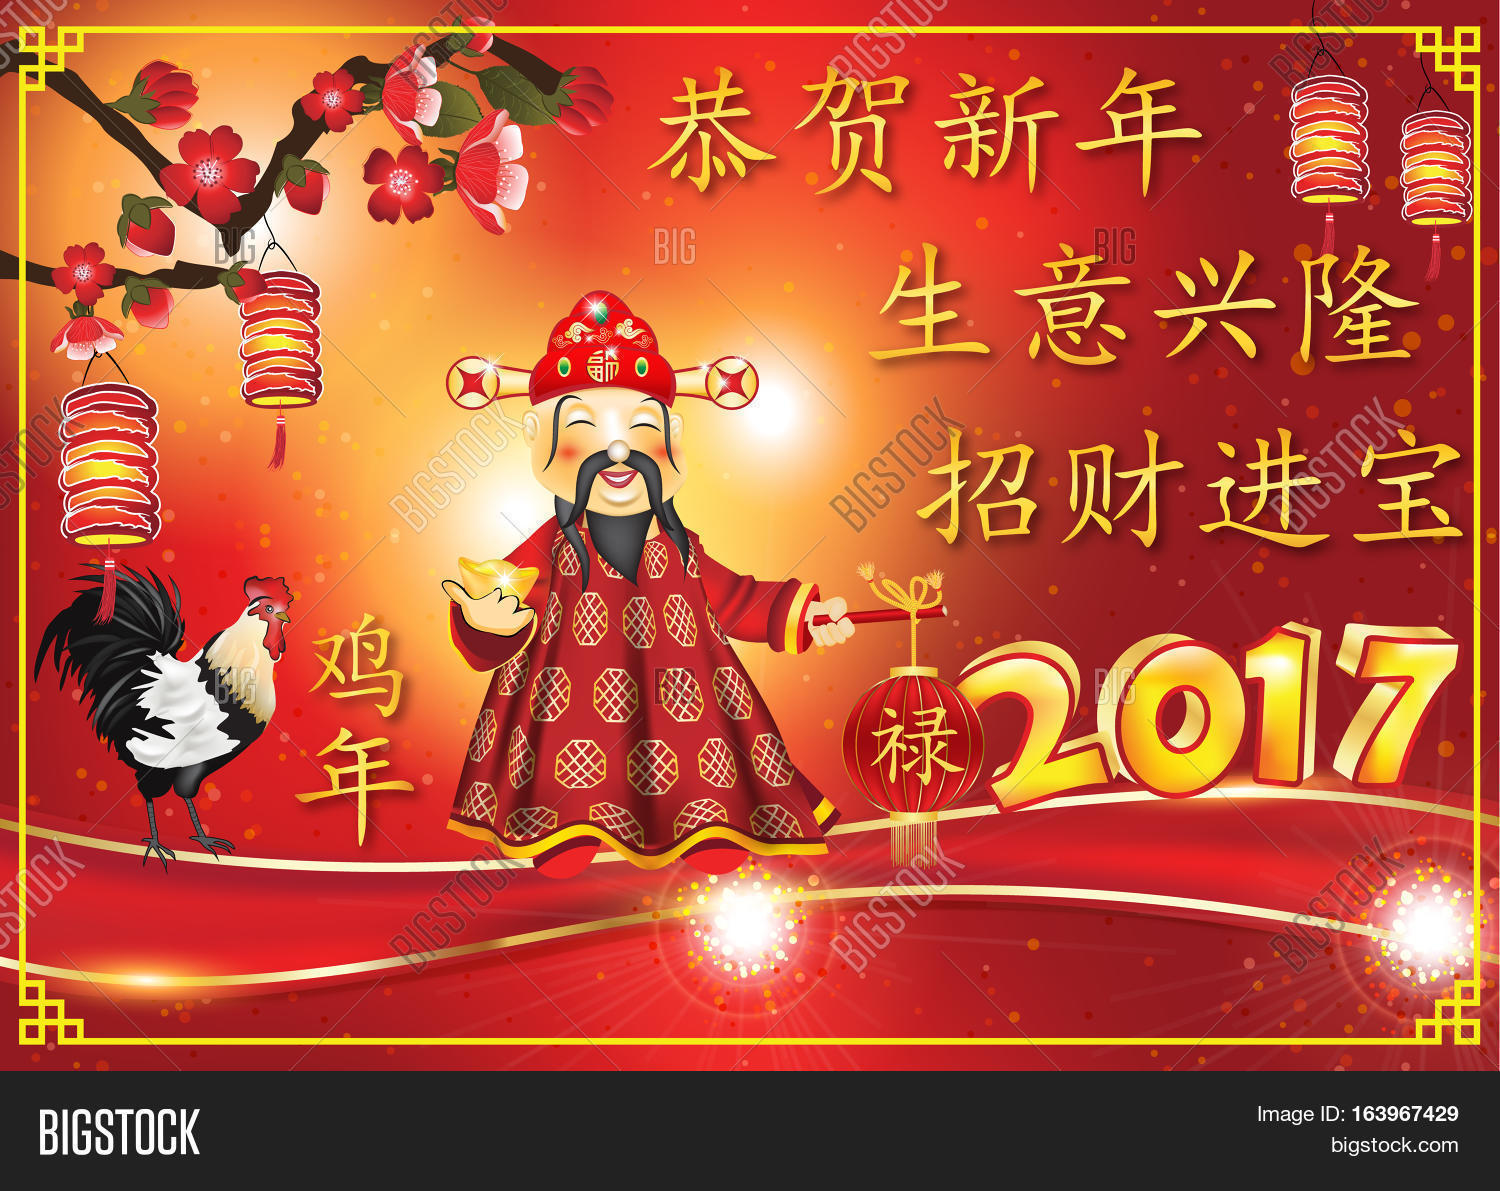 Corporate chinese new year rooster image photo bigstock corporate chinese new year of rooster greeting card text text translation respectful congratulations kristyandbryce Images